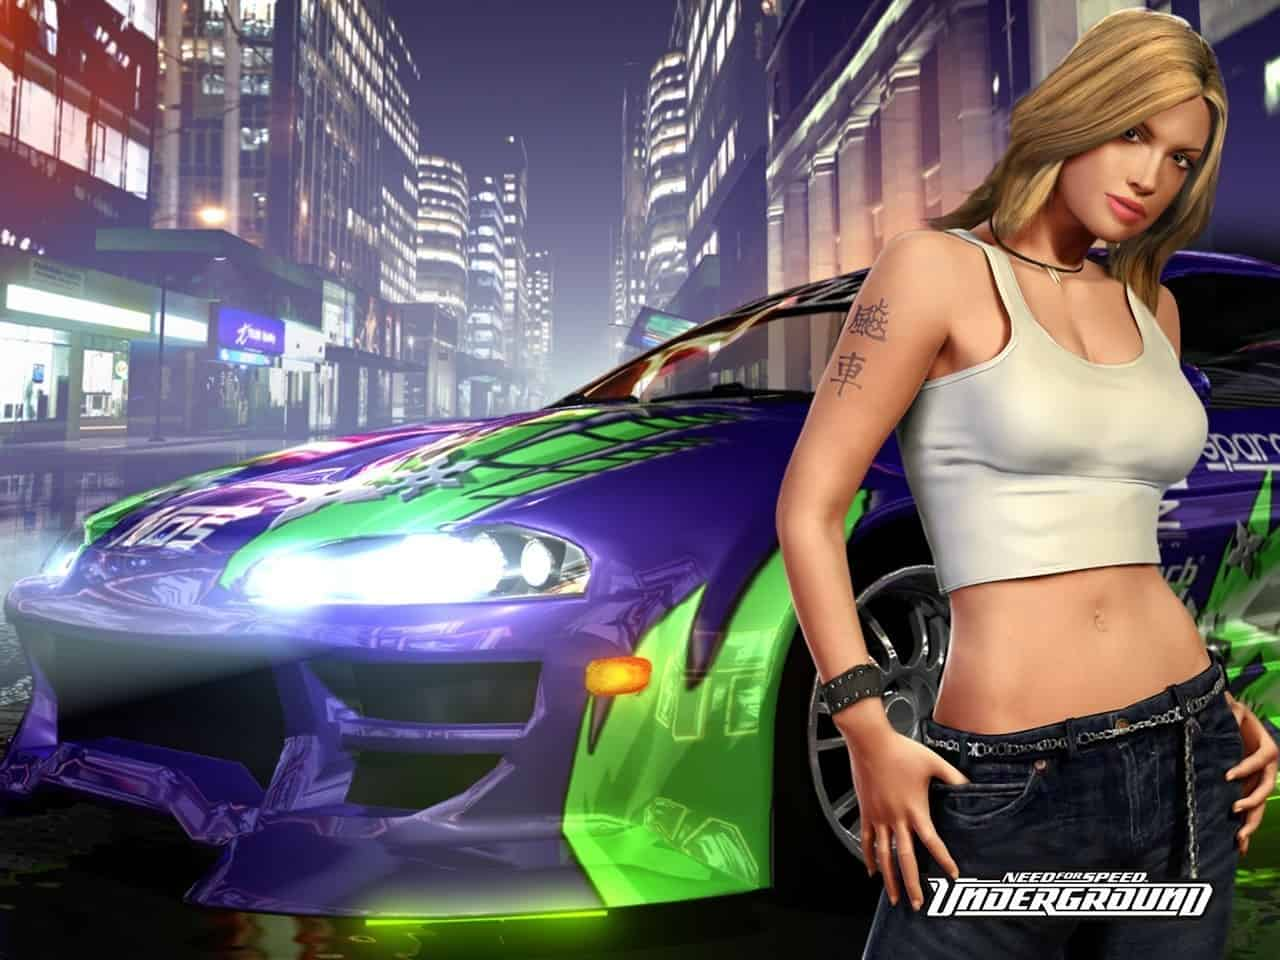 Need For Speed Underground Save Game Save File Download